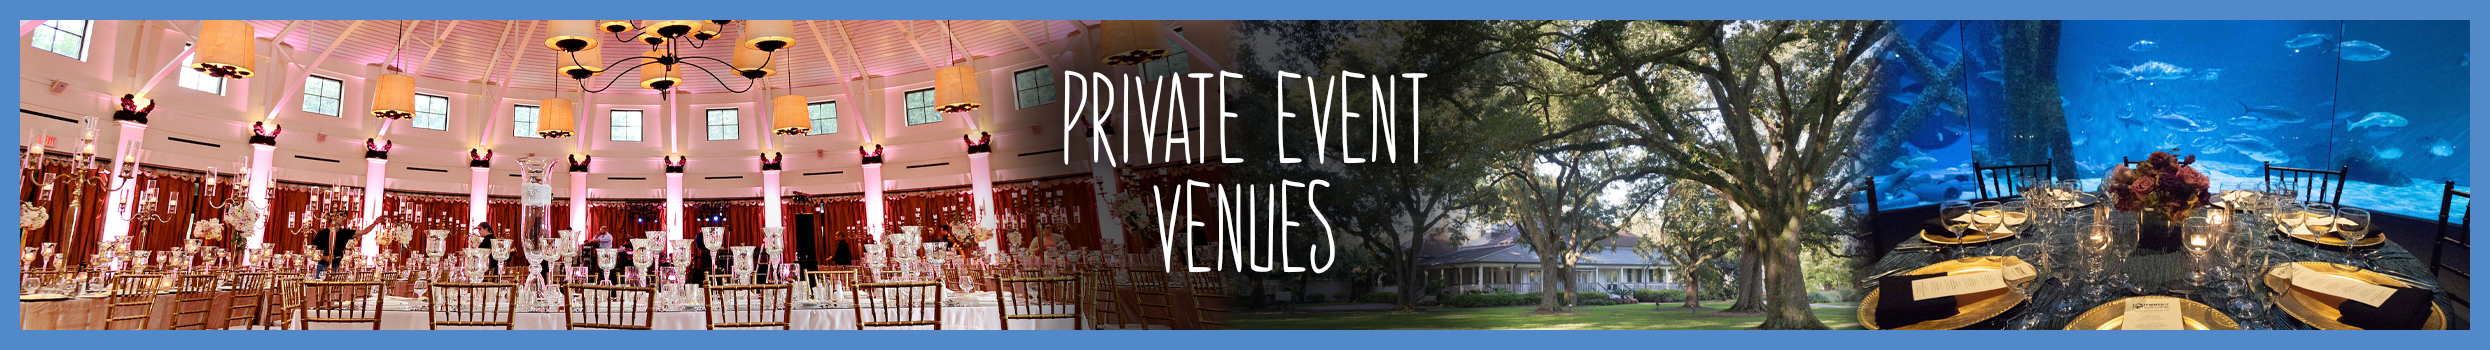 privateeventvenues-header-slider